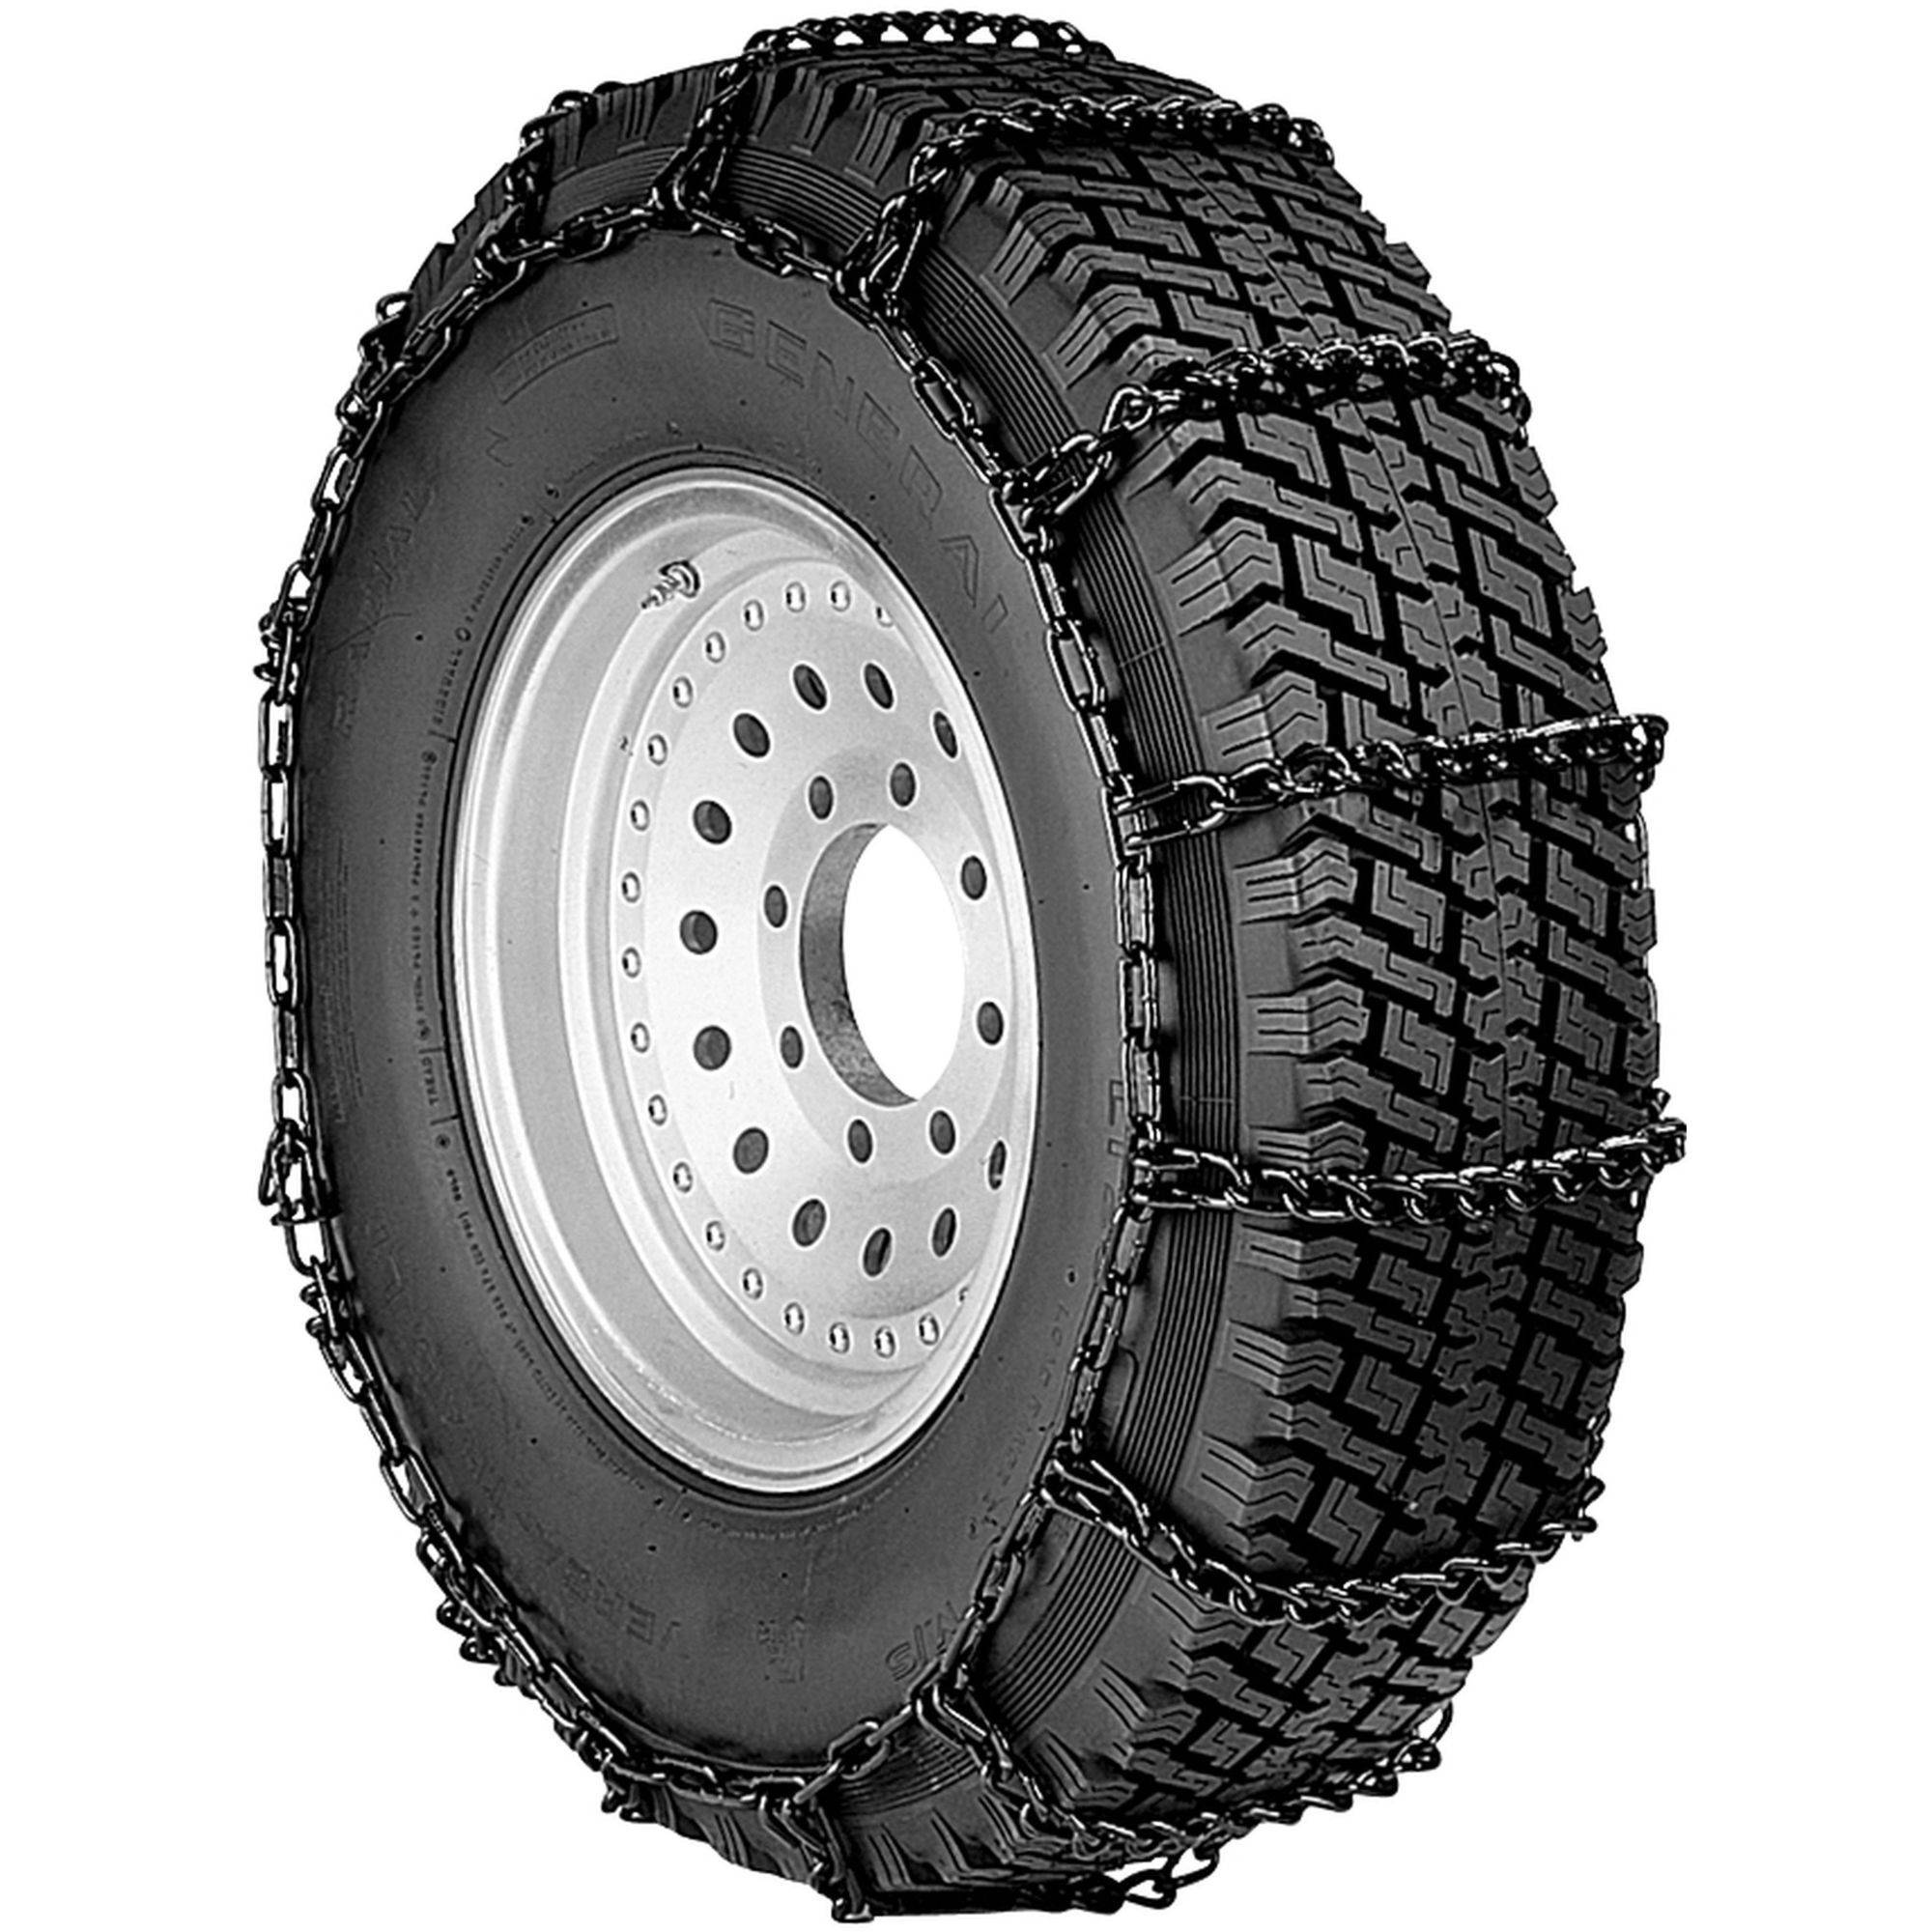 Peerless Chain Company Truck Tire Chains